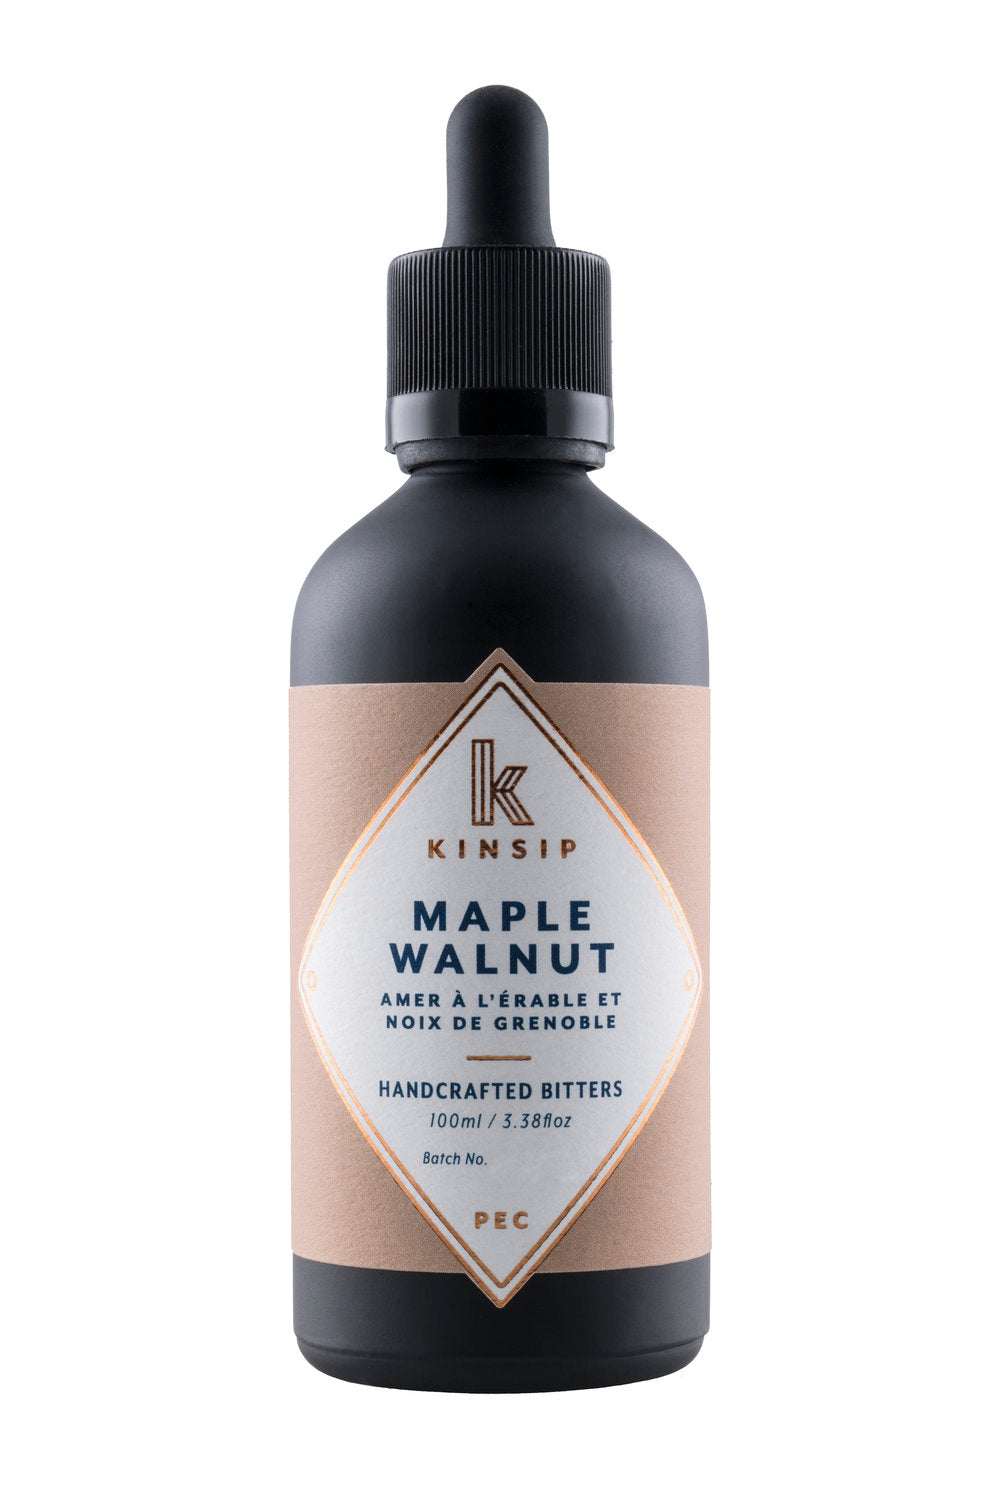 Maple Walnut Handcrafted Bitters